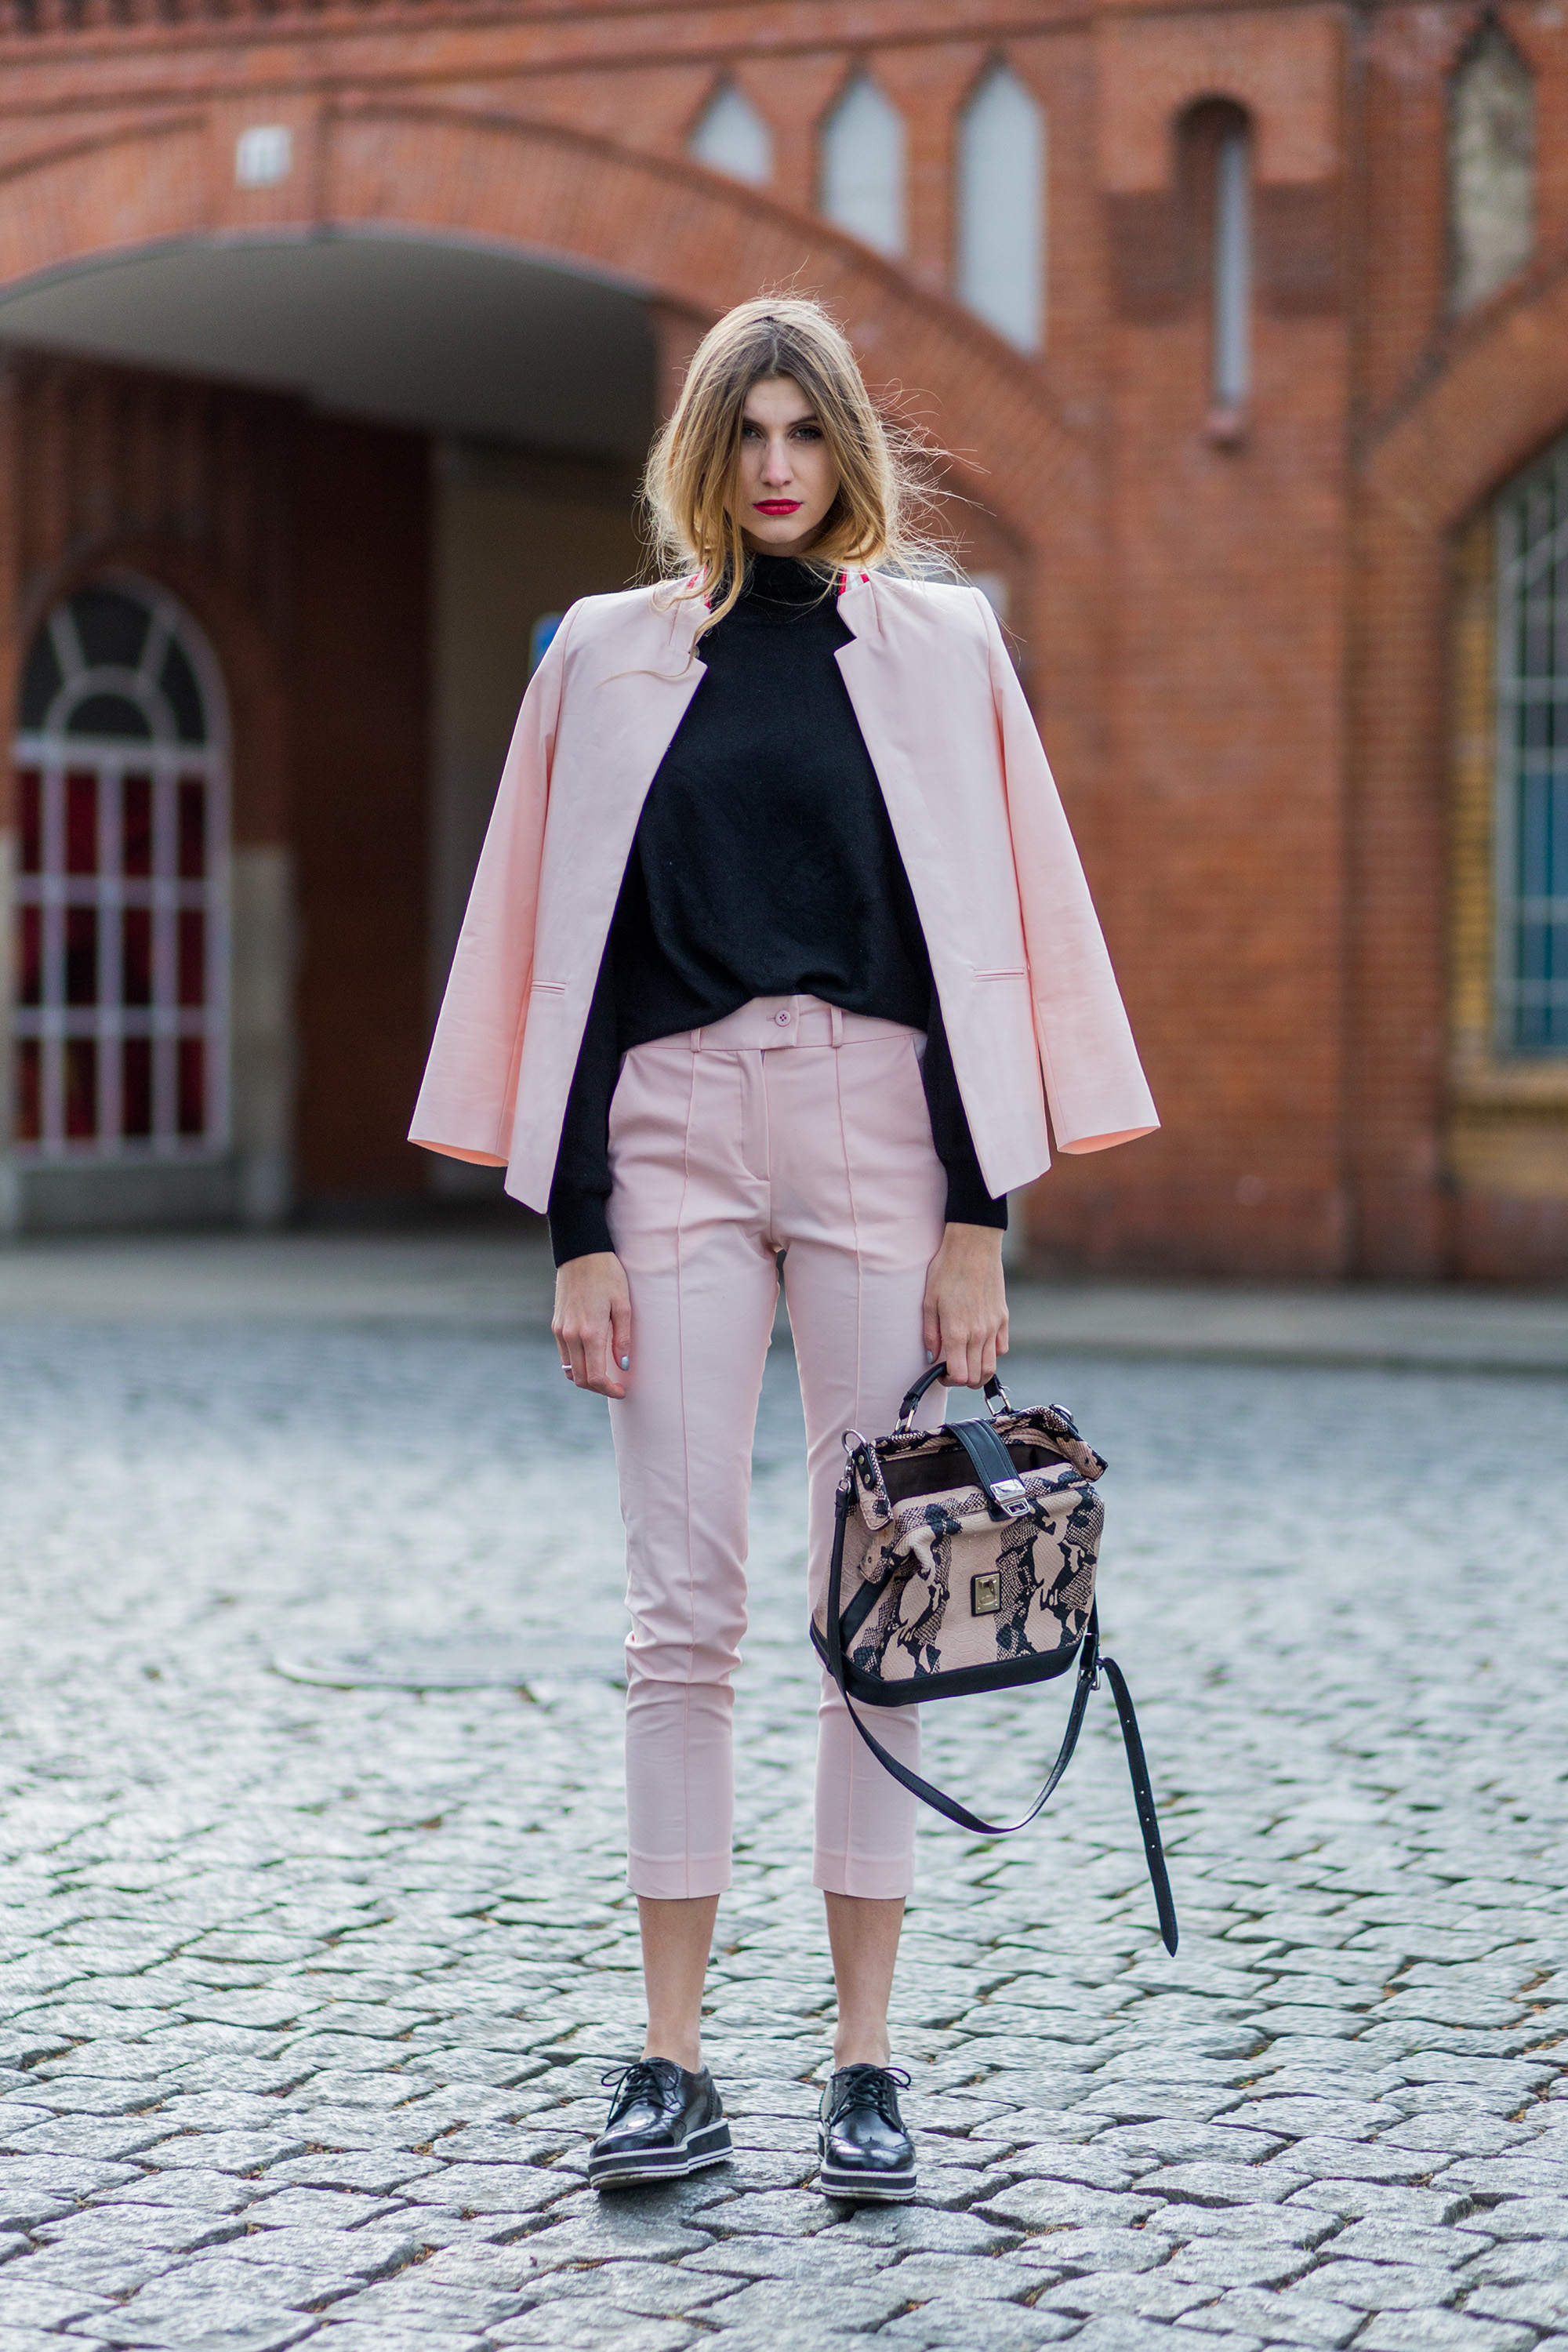 BERLIN, GERMANY - APRIL 9: Kimyana Hachmann wearing a pink blazer and 7 8 pants from Valentine Gauthier, black Forever 21 shoes, black turtleneck sweater and vintage bag on April 9, 2016 in Berlin, Germany (Photo by Christian Vierig/Getty Images)